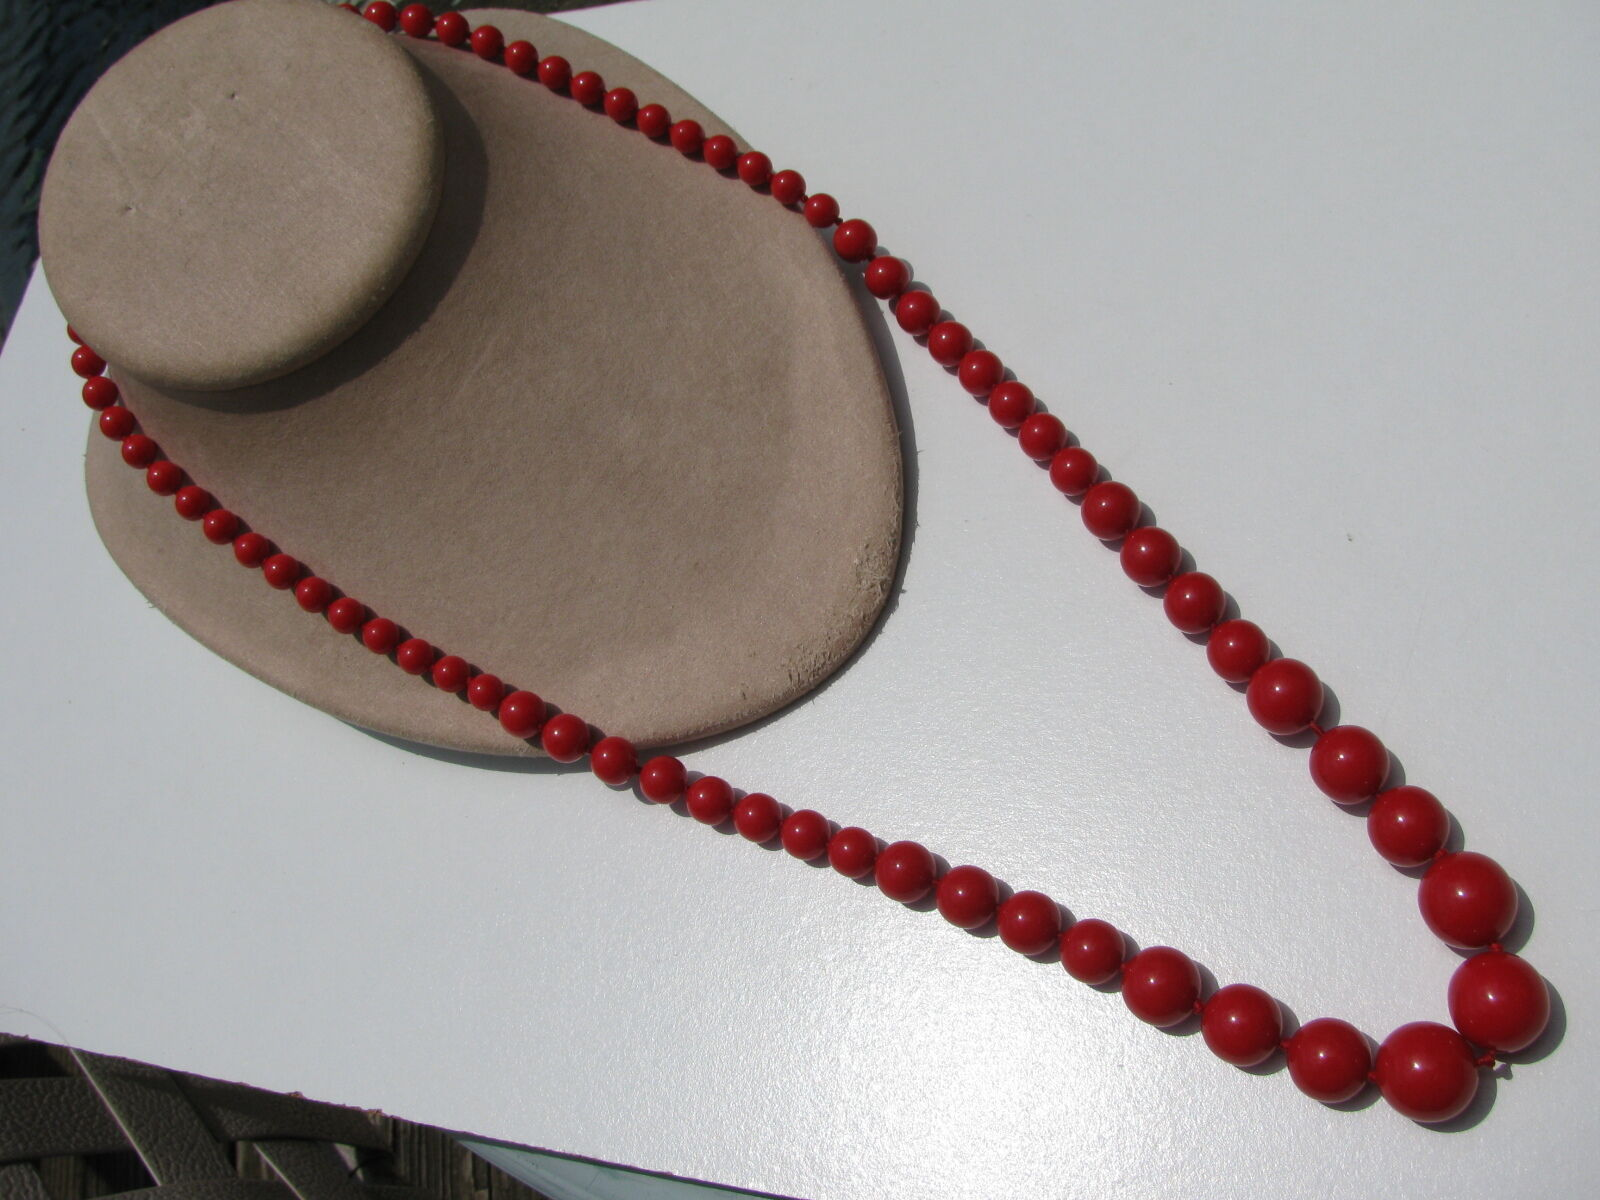 VINTAGE RETRO RED LUCITE GRADUATING BEADS SINGLE KNOTTED HIDDEN PUSH IN CLASP NE